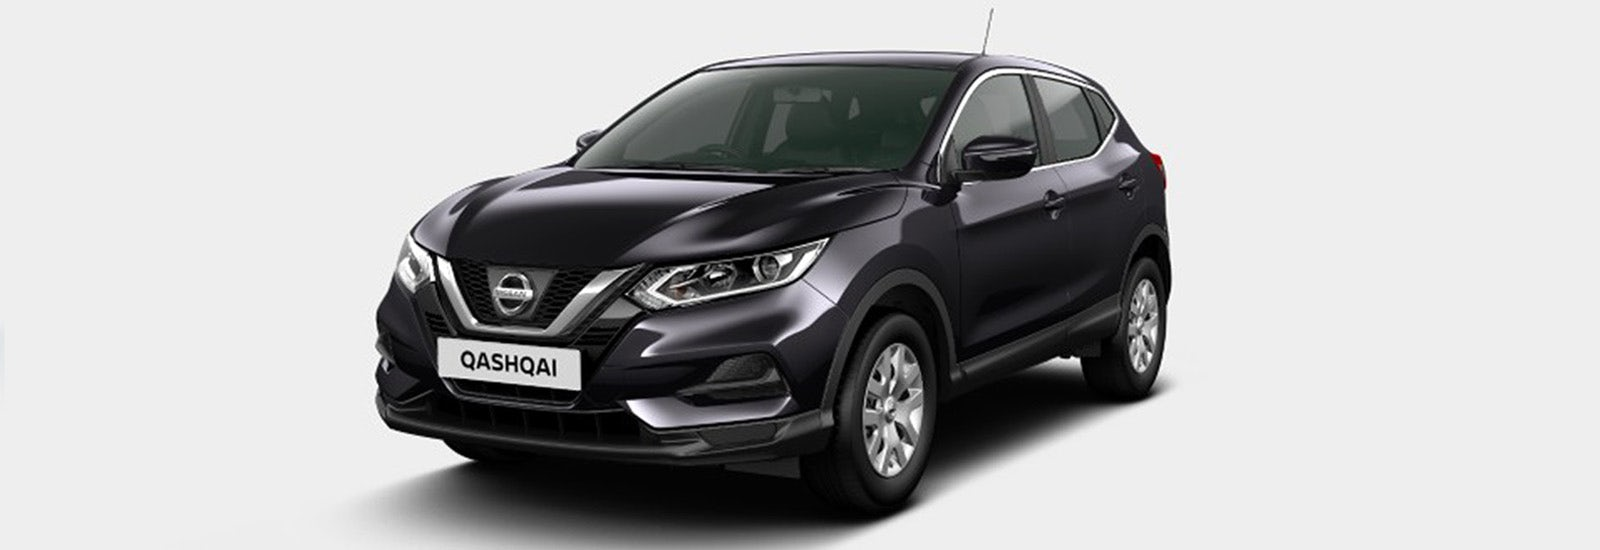 nissan qashqai colours guide and prices carwow. Black Bedroom Furniture Sets. Home Design Ideas